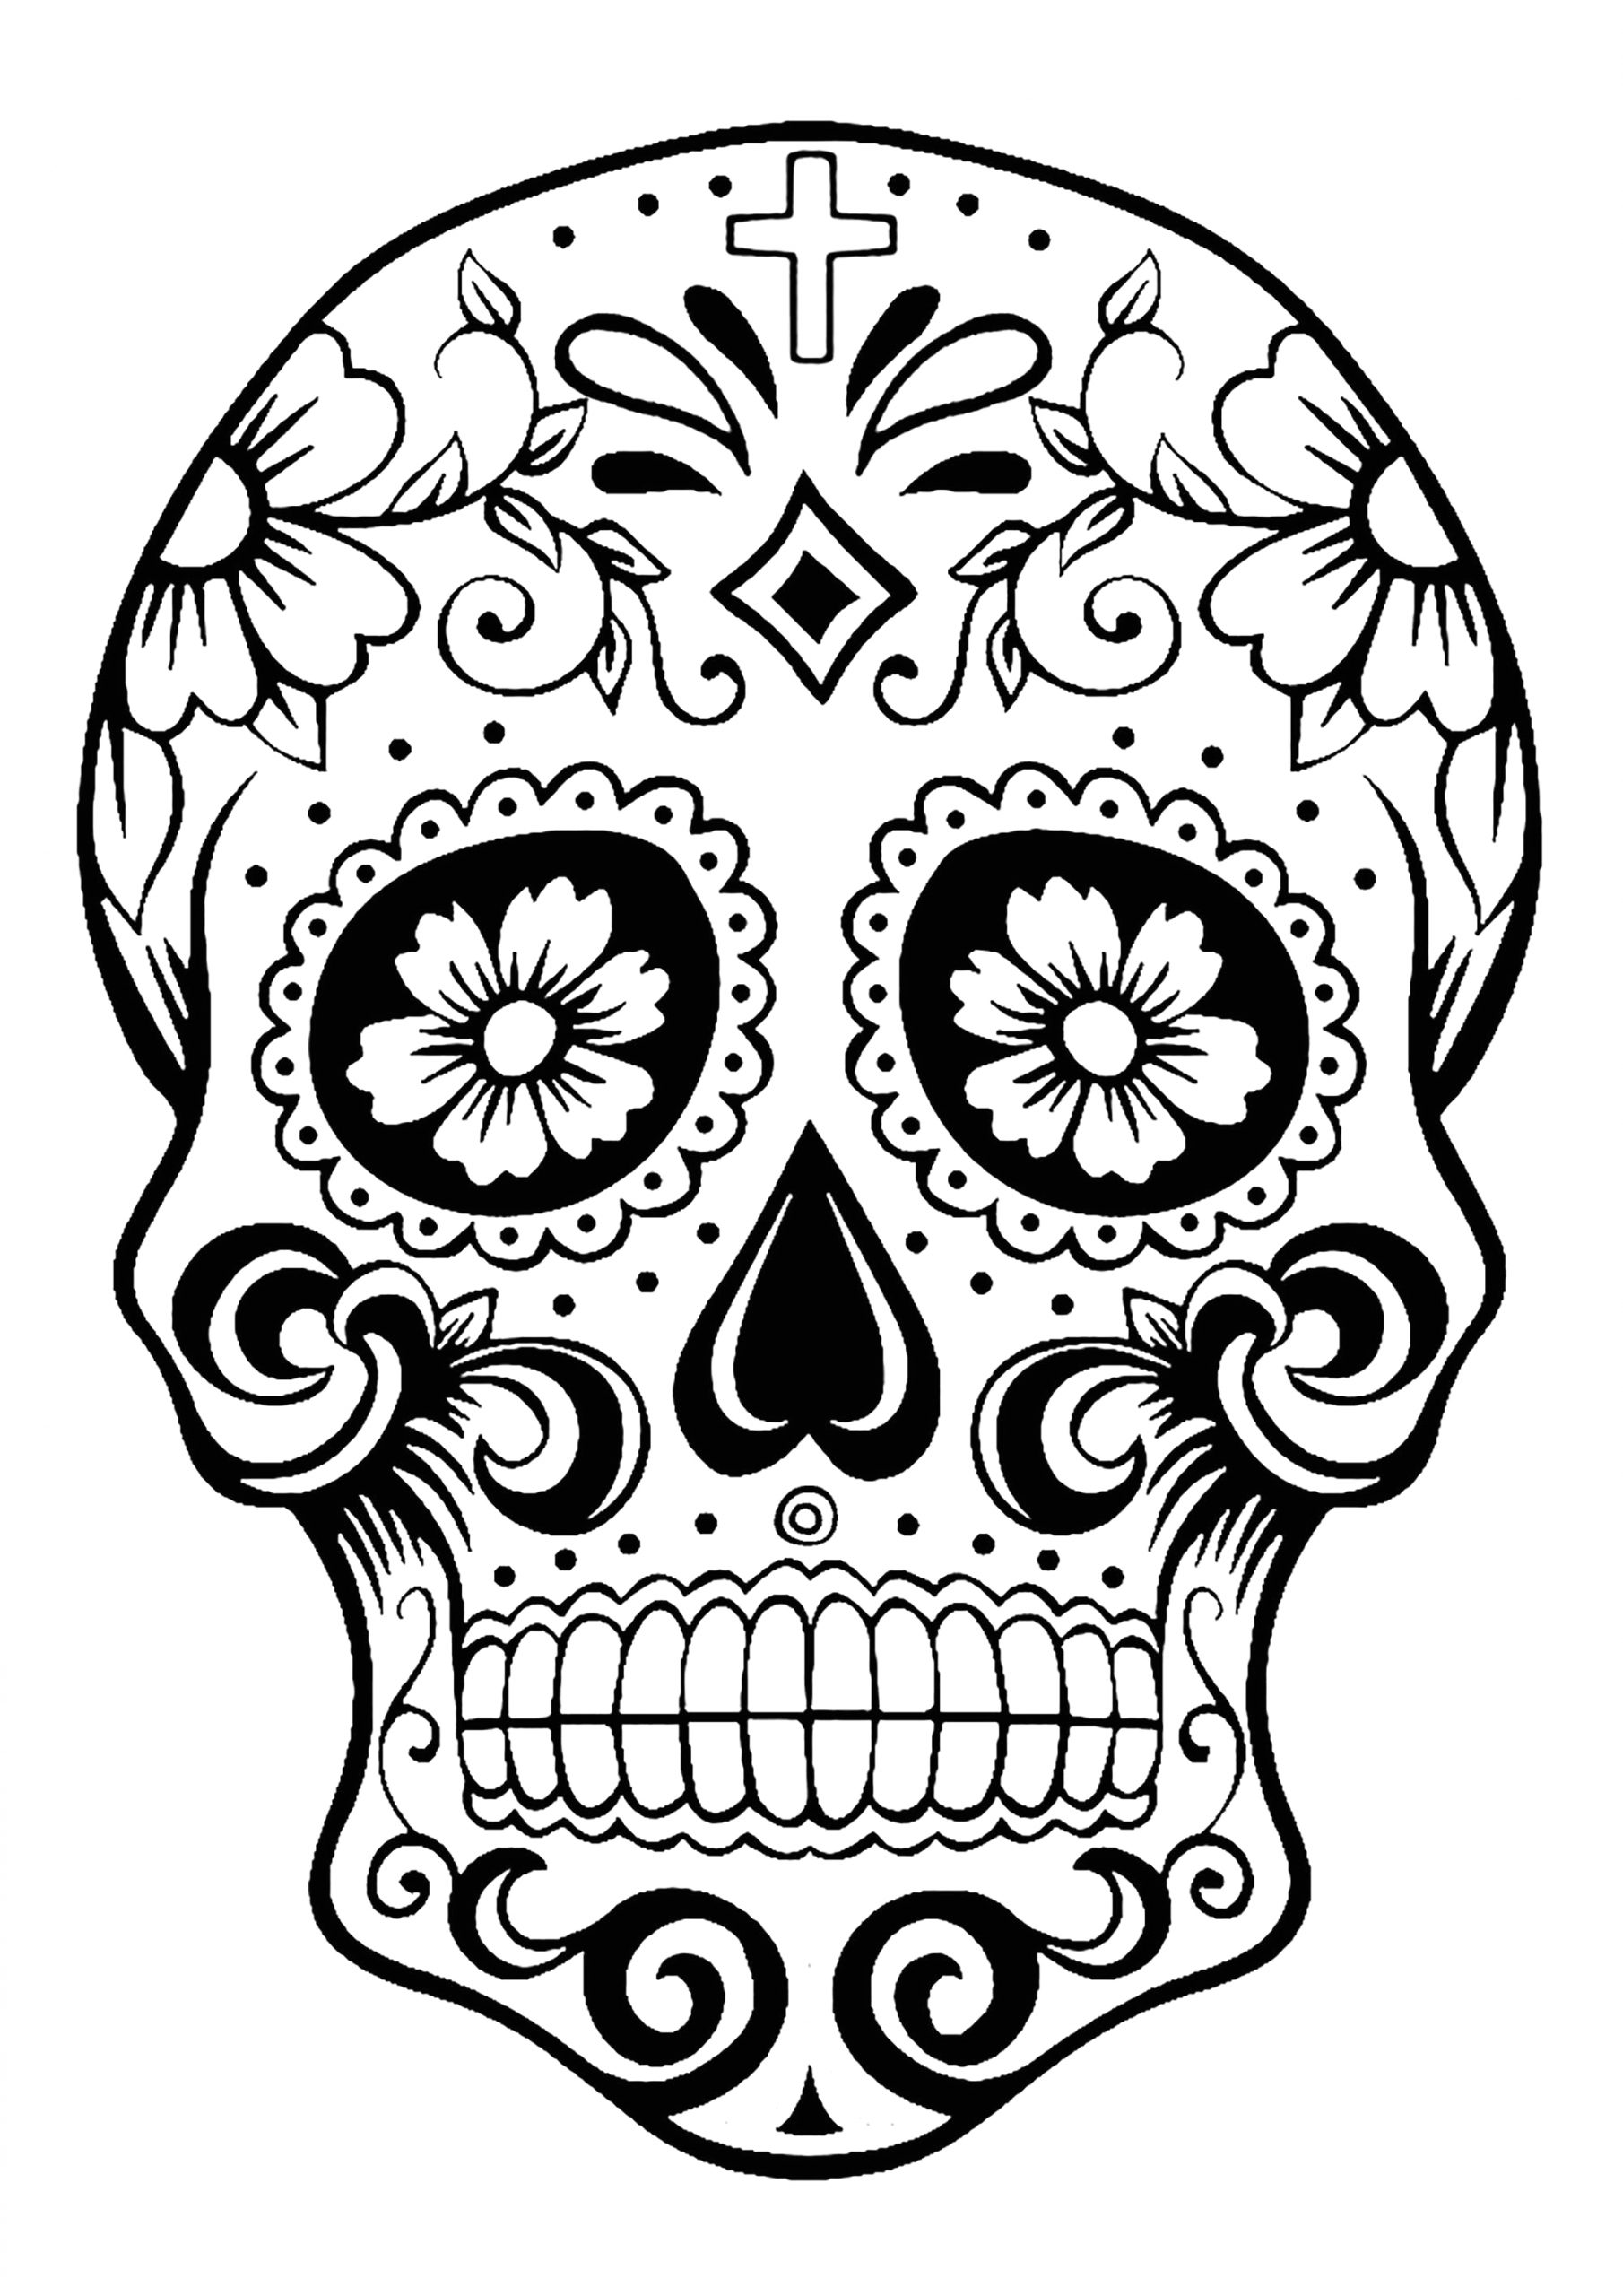 Dia De Los Muertos Skull Coloring Page Skull Coloring Pages for Adults